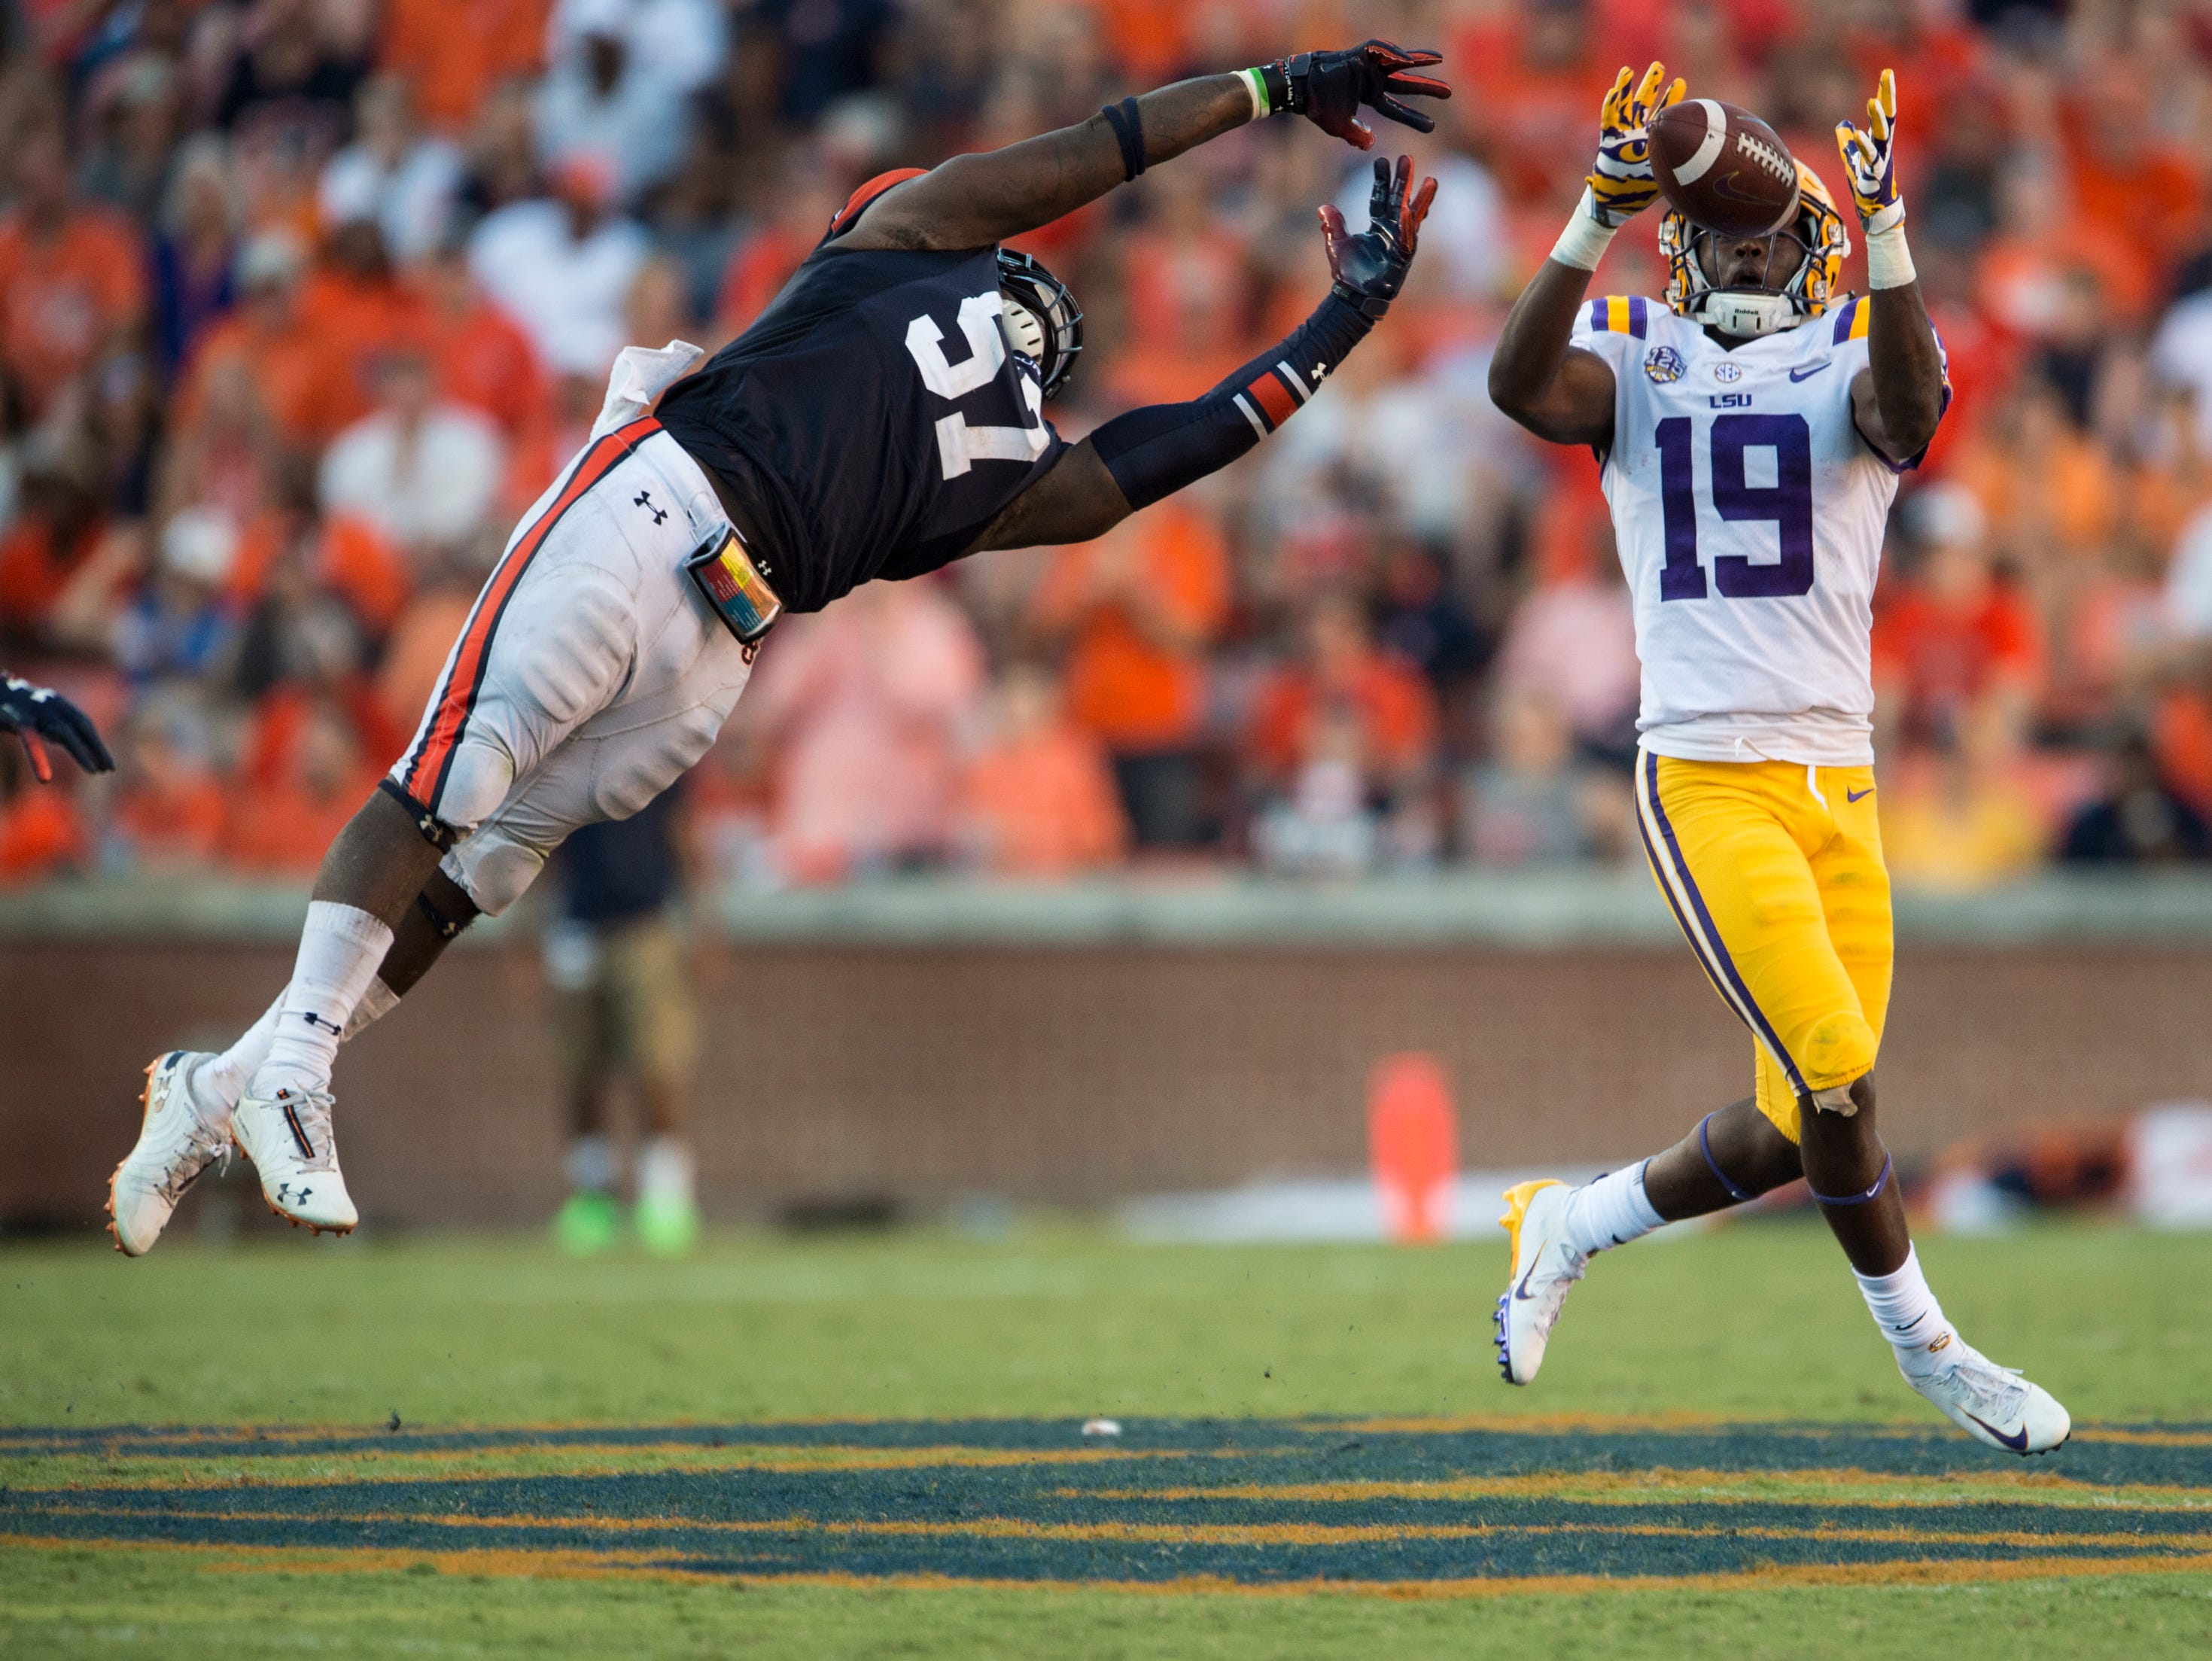 LSU's Derrick Dillon (19) catches a pass and runs it in for a touchdown to but LSU within 3 points against  Auburn at Jordan-Hare Stadium in Auburn, Ala., on Saturday, Sept. 15, 2018. LSU defeated Auburn 22-21.